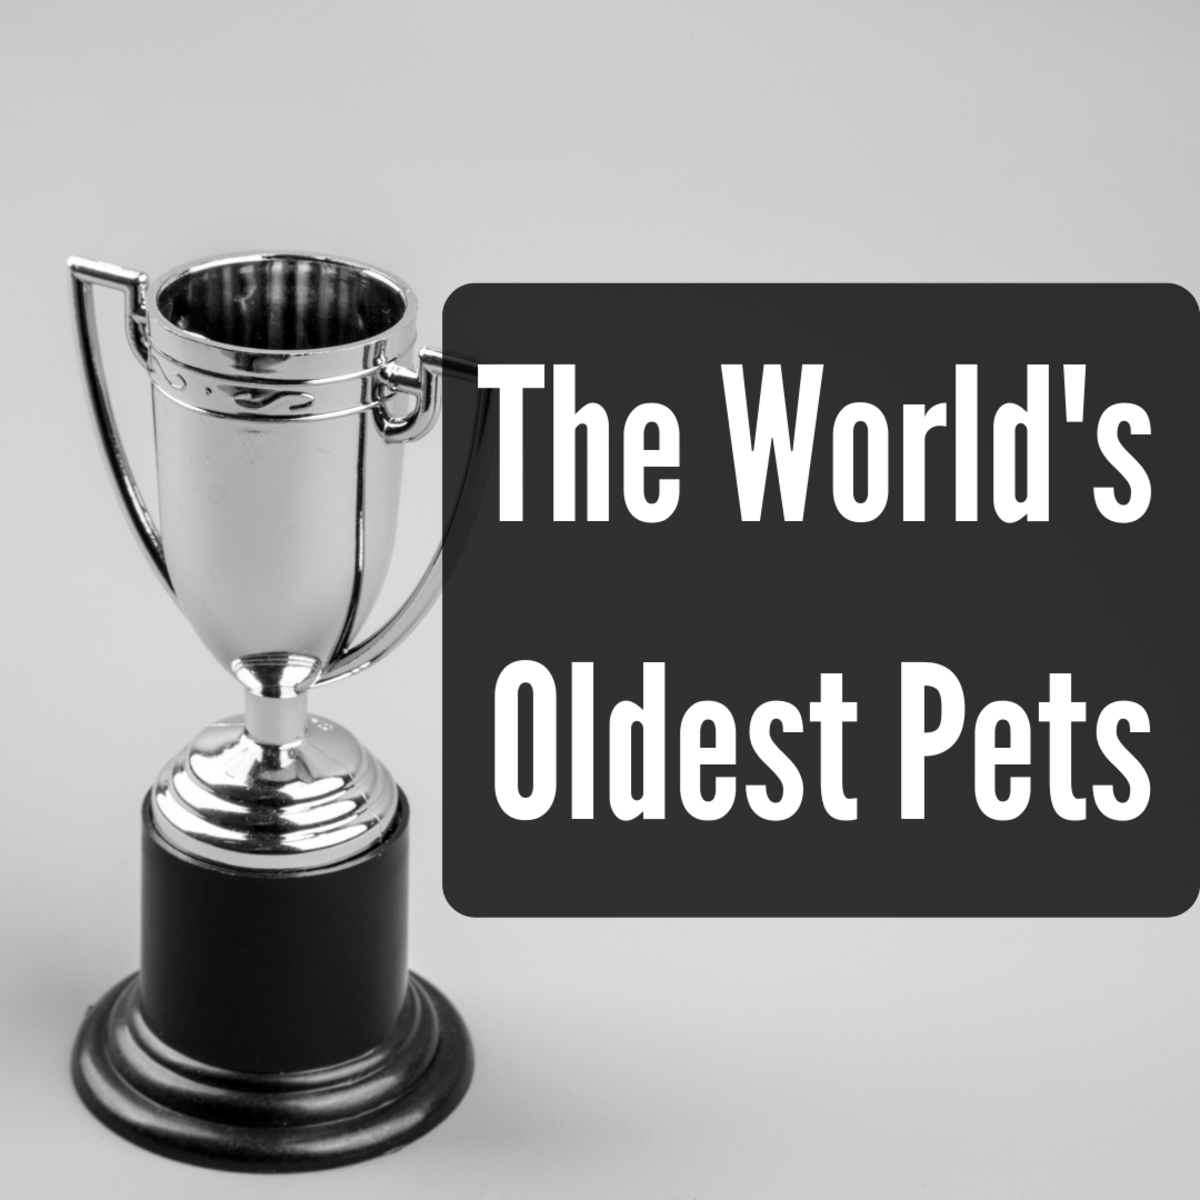 Meet the World's Oldest Pets